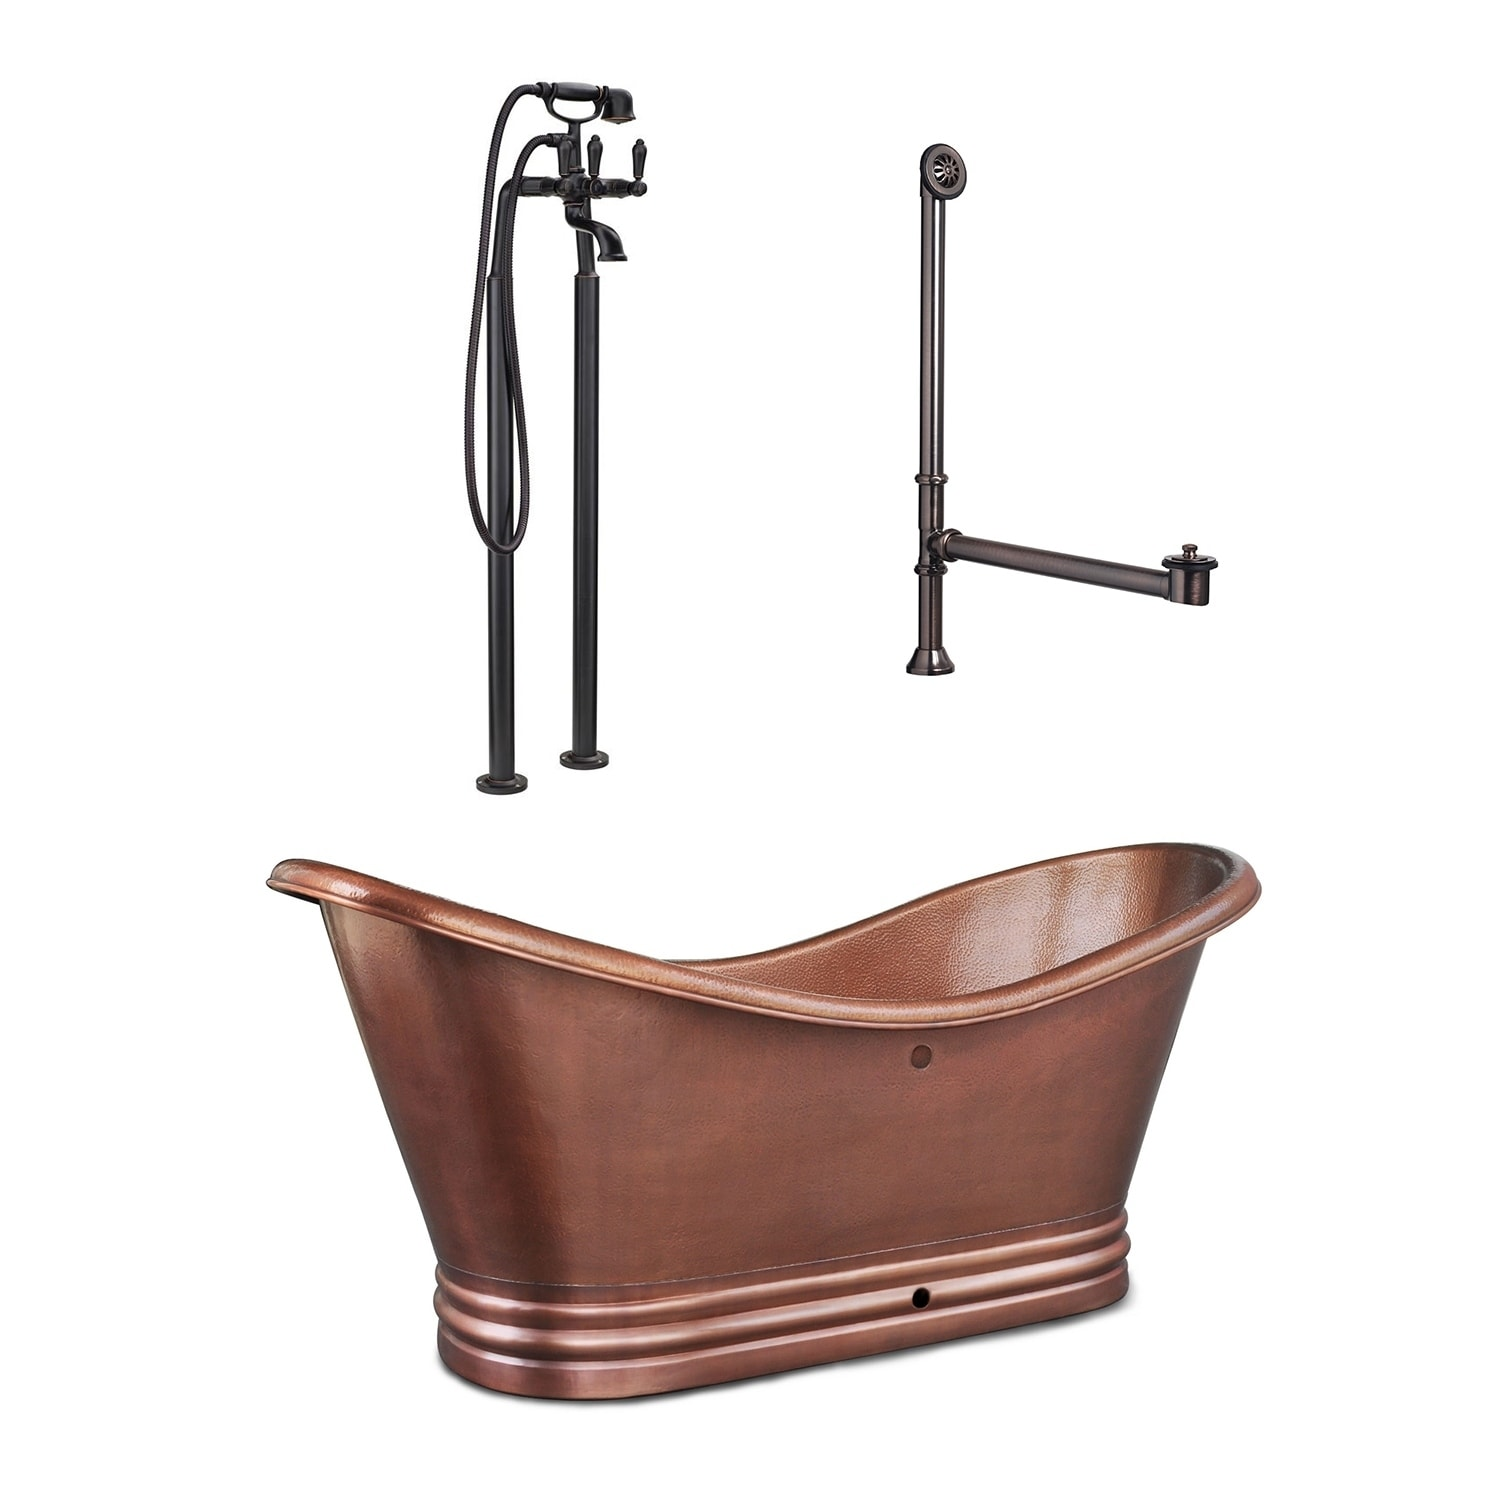 Picture of: Shop Euclid 6 Ft All In One Solid Copper Freestanding Bathtub Kit With Pfister Faucet And Drain And Overflow In Antique Copper On Sale Overstock 28153217